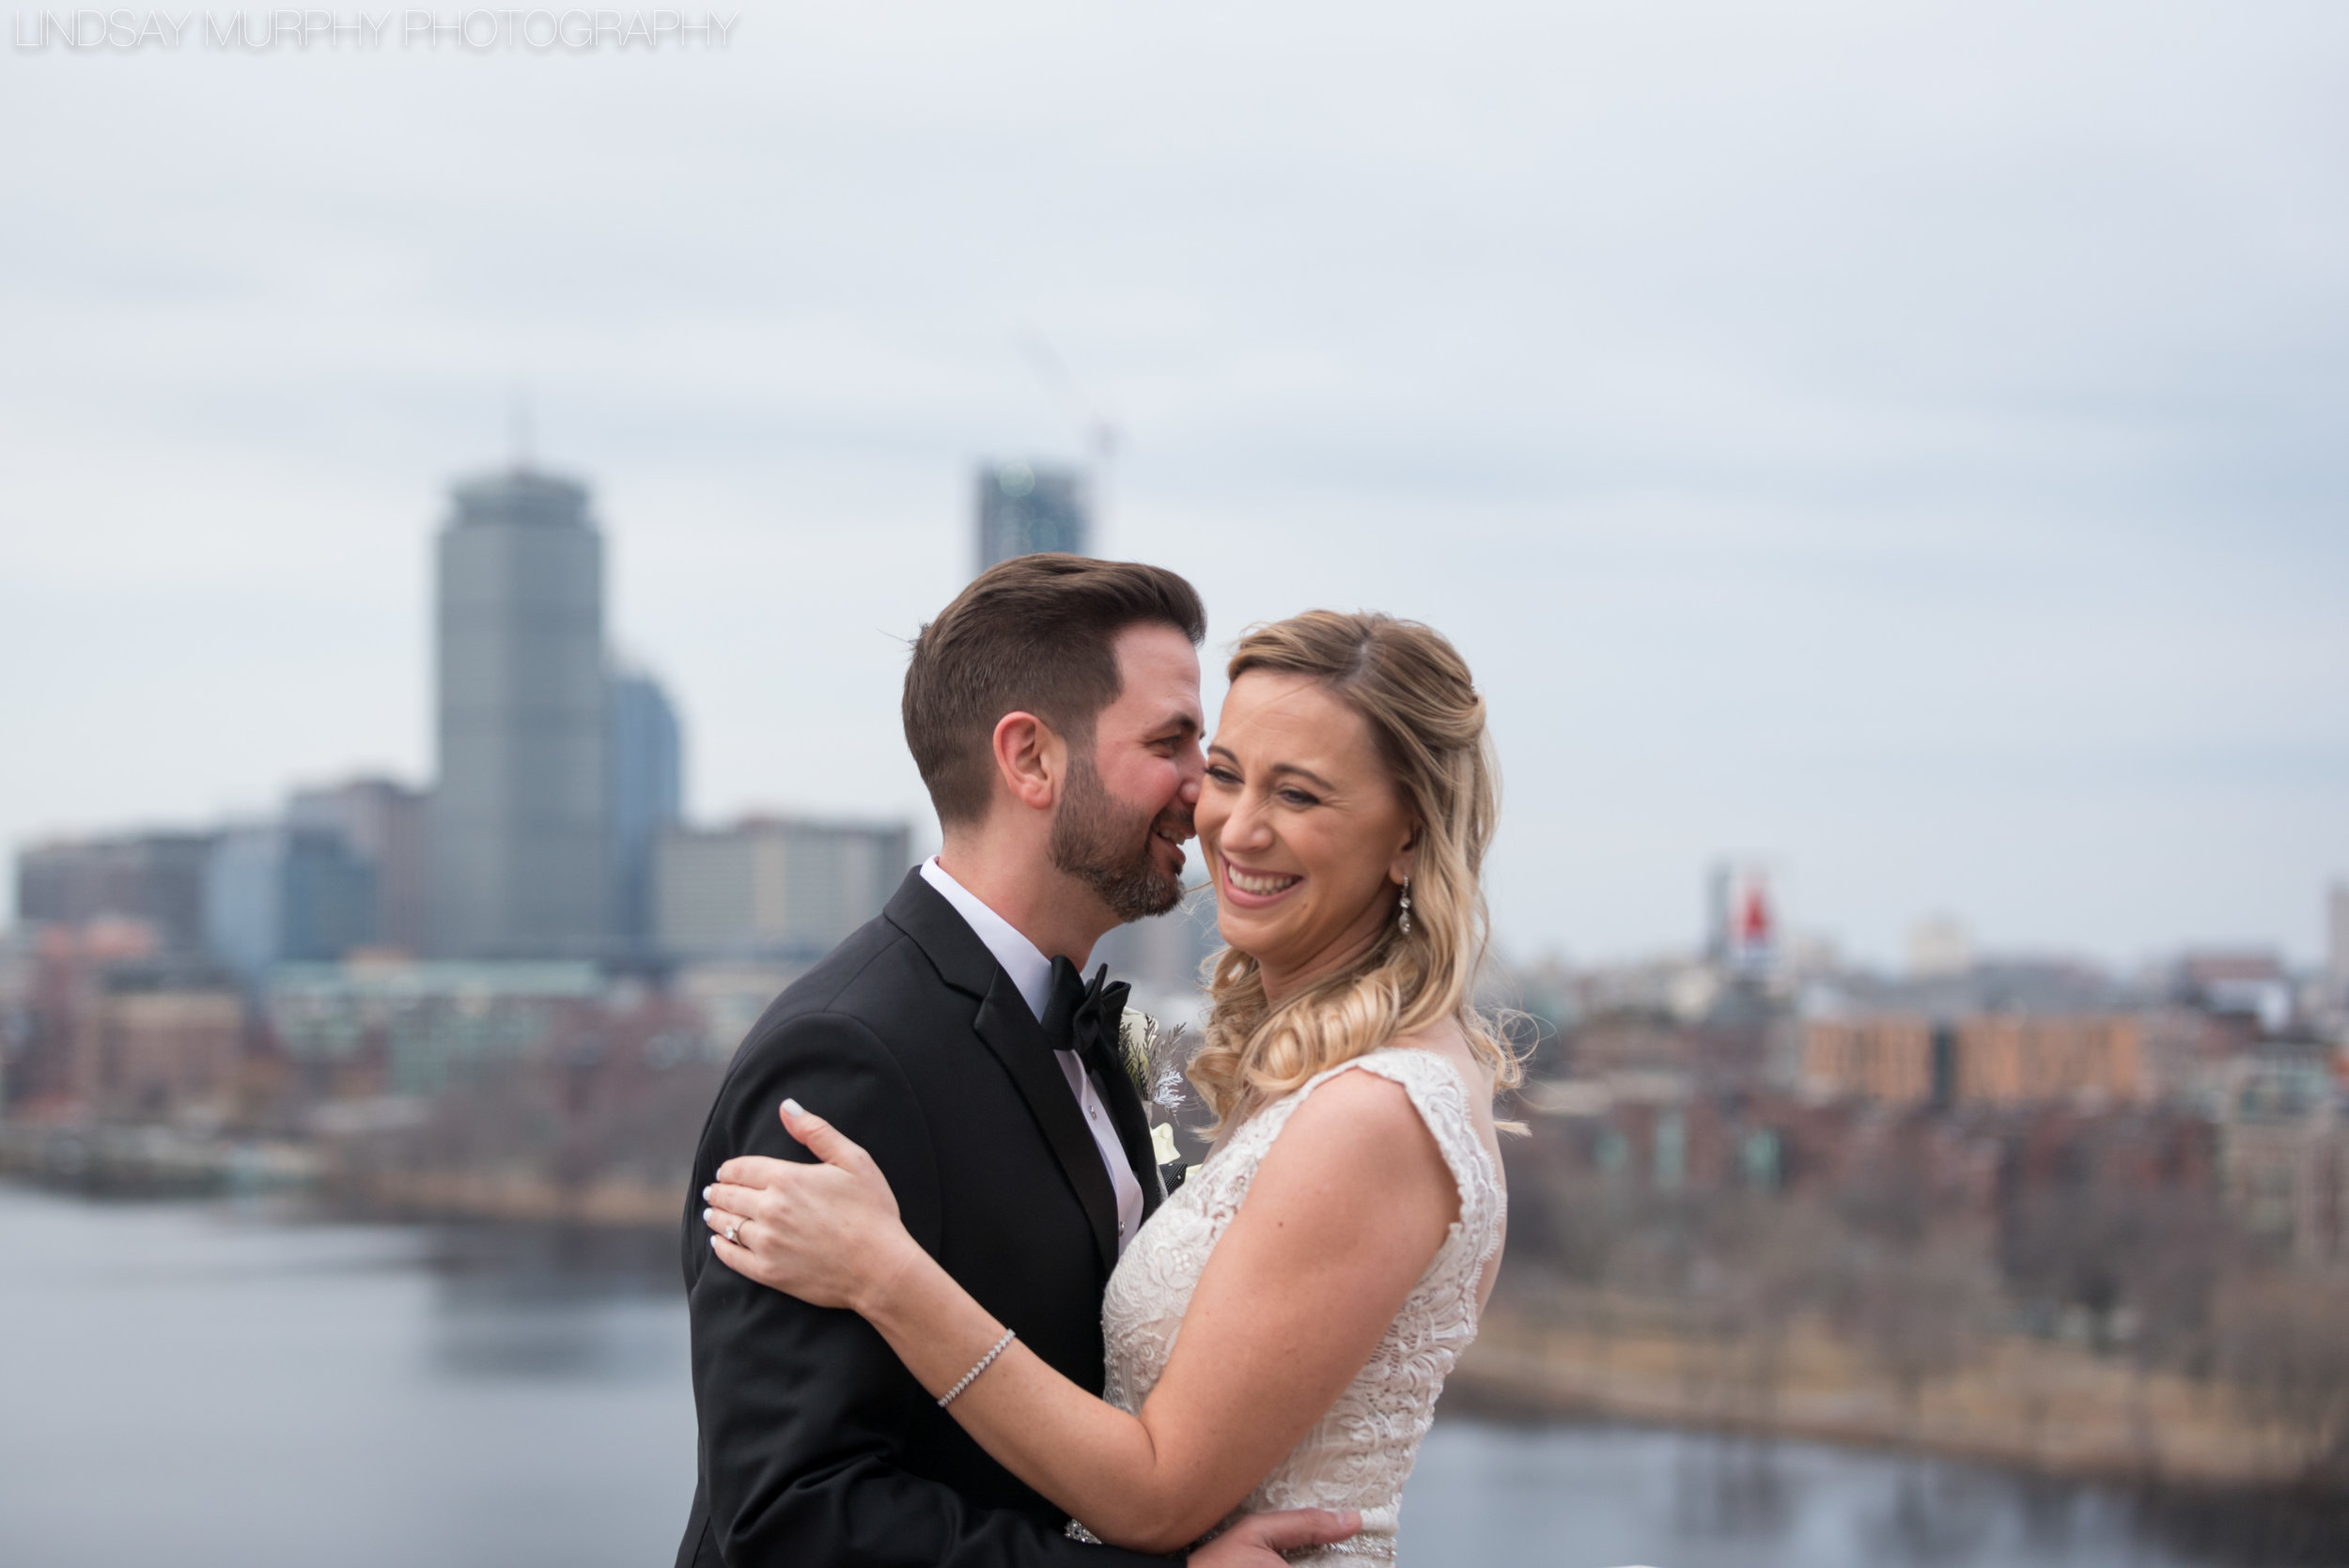 boston_wedding_photographer-149.jpg